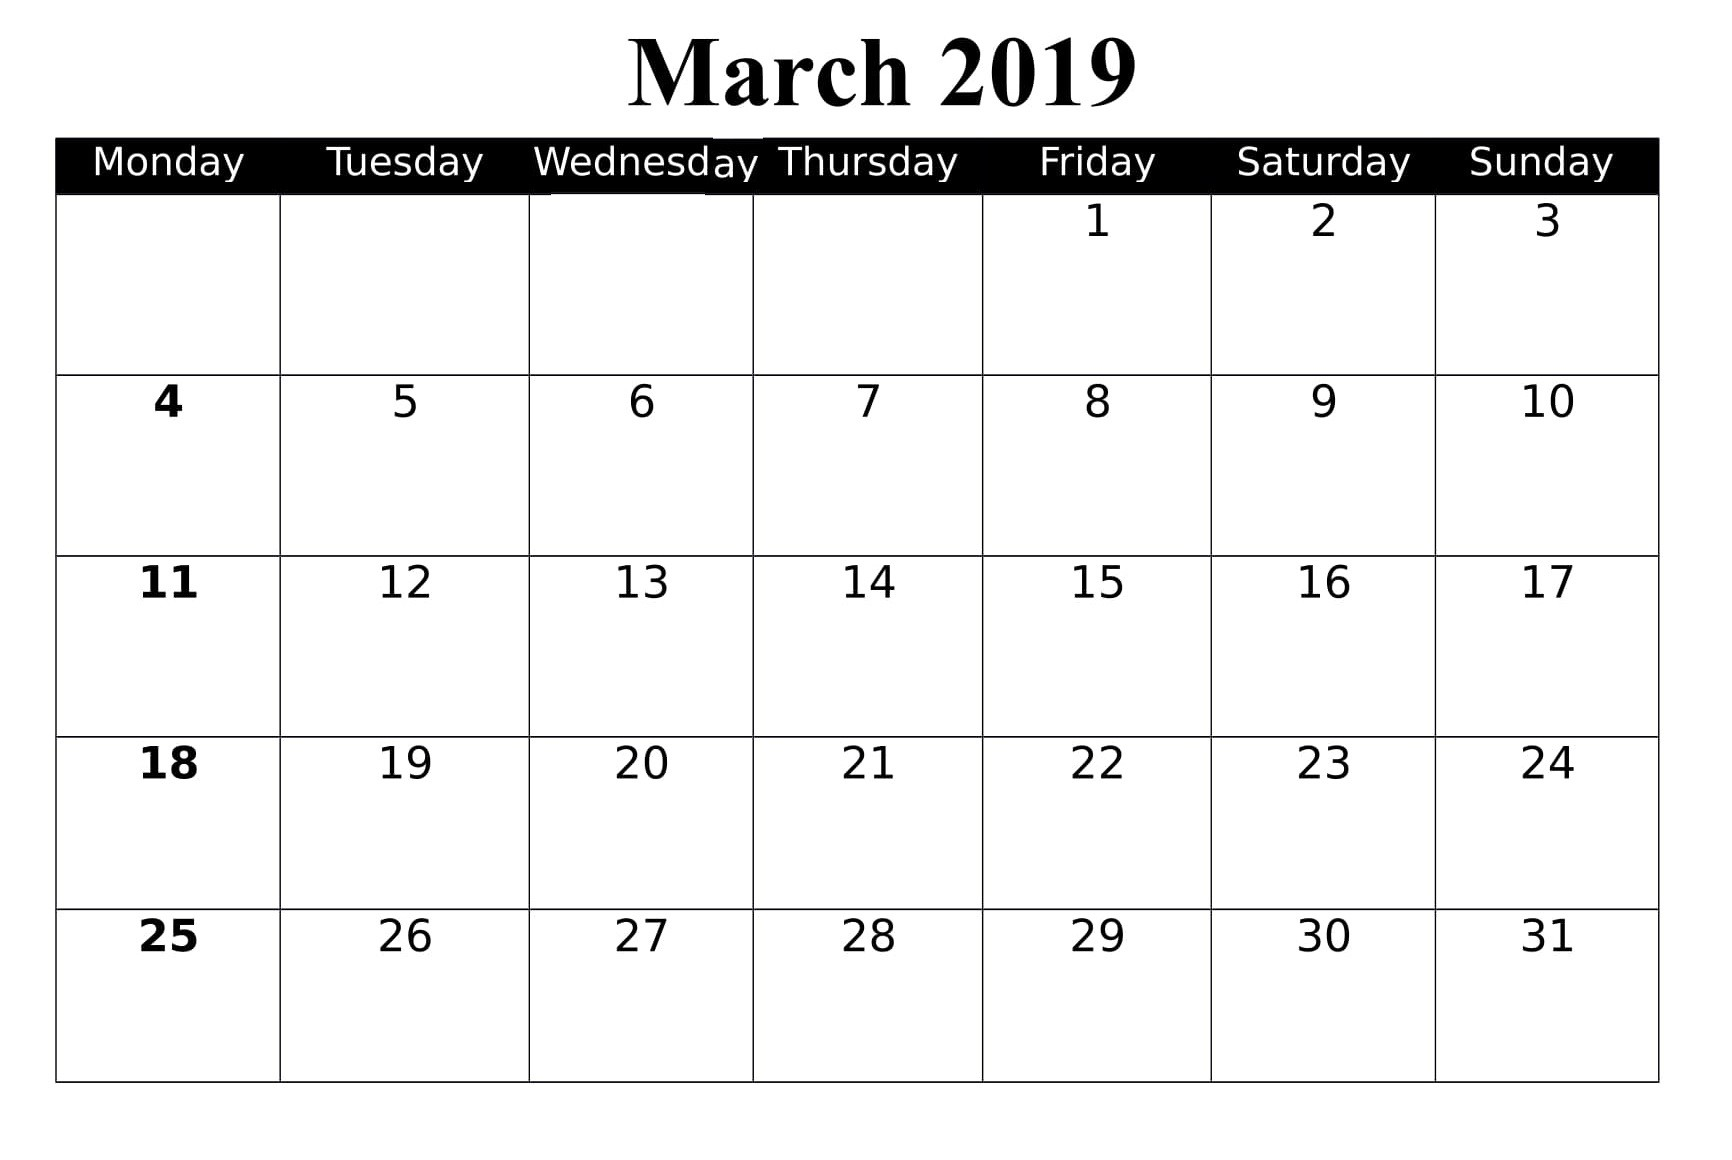 March Calendar 2019 Más Recientes March 2019 Calendar Printable Chart – Best Reviews 2019 Of March Calendar 2019 Más Recientes March 2019 Wall Calendar Colorful Sketch Horizontal Template Letter